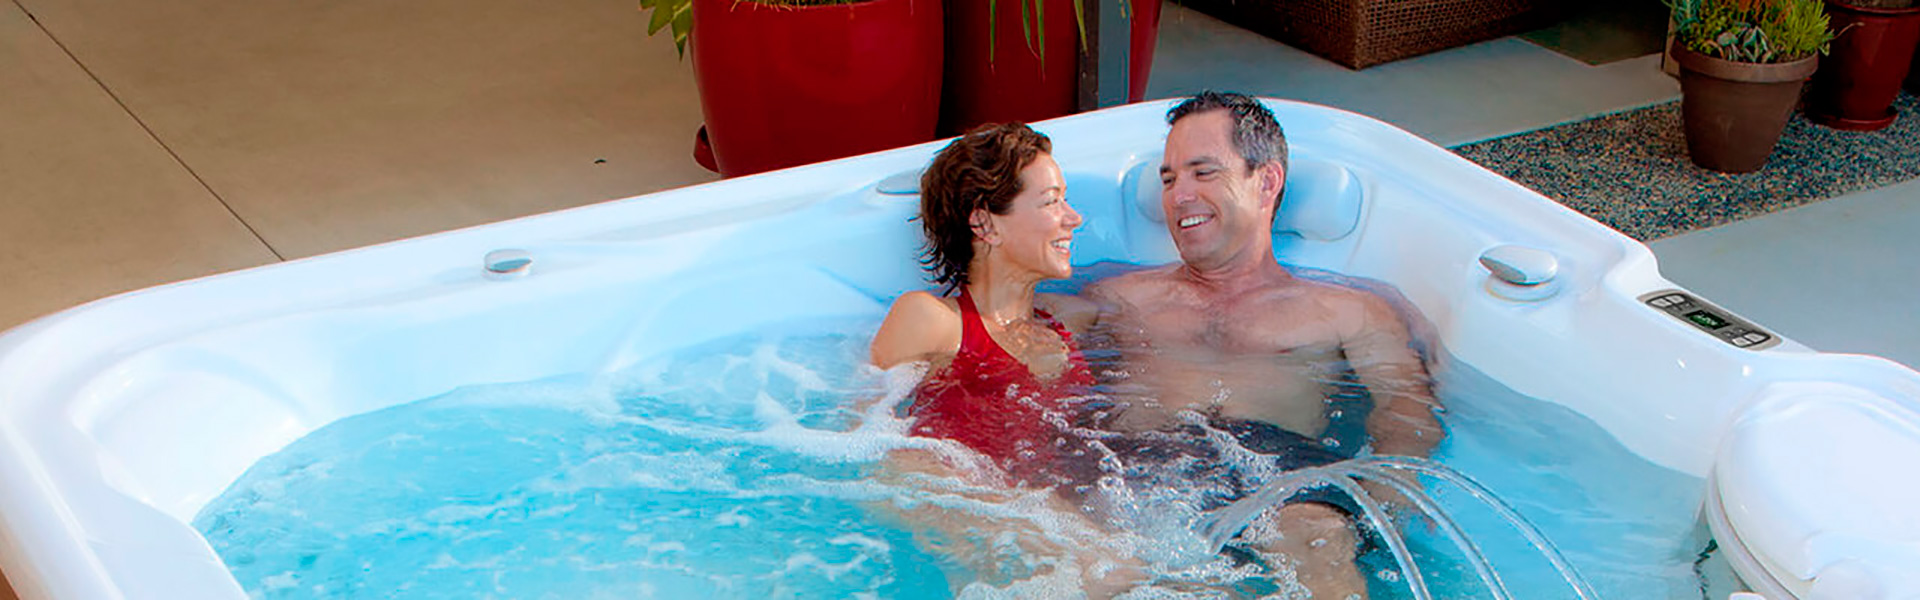 Hot Tubs Dealer St. Louis Shares How a Spa Staycation Can Improve a Person's Outlook